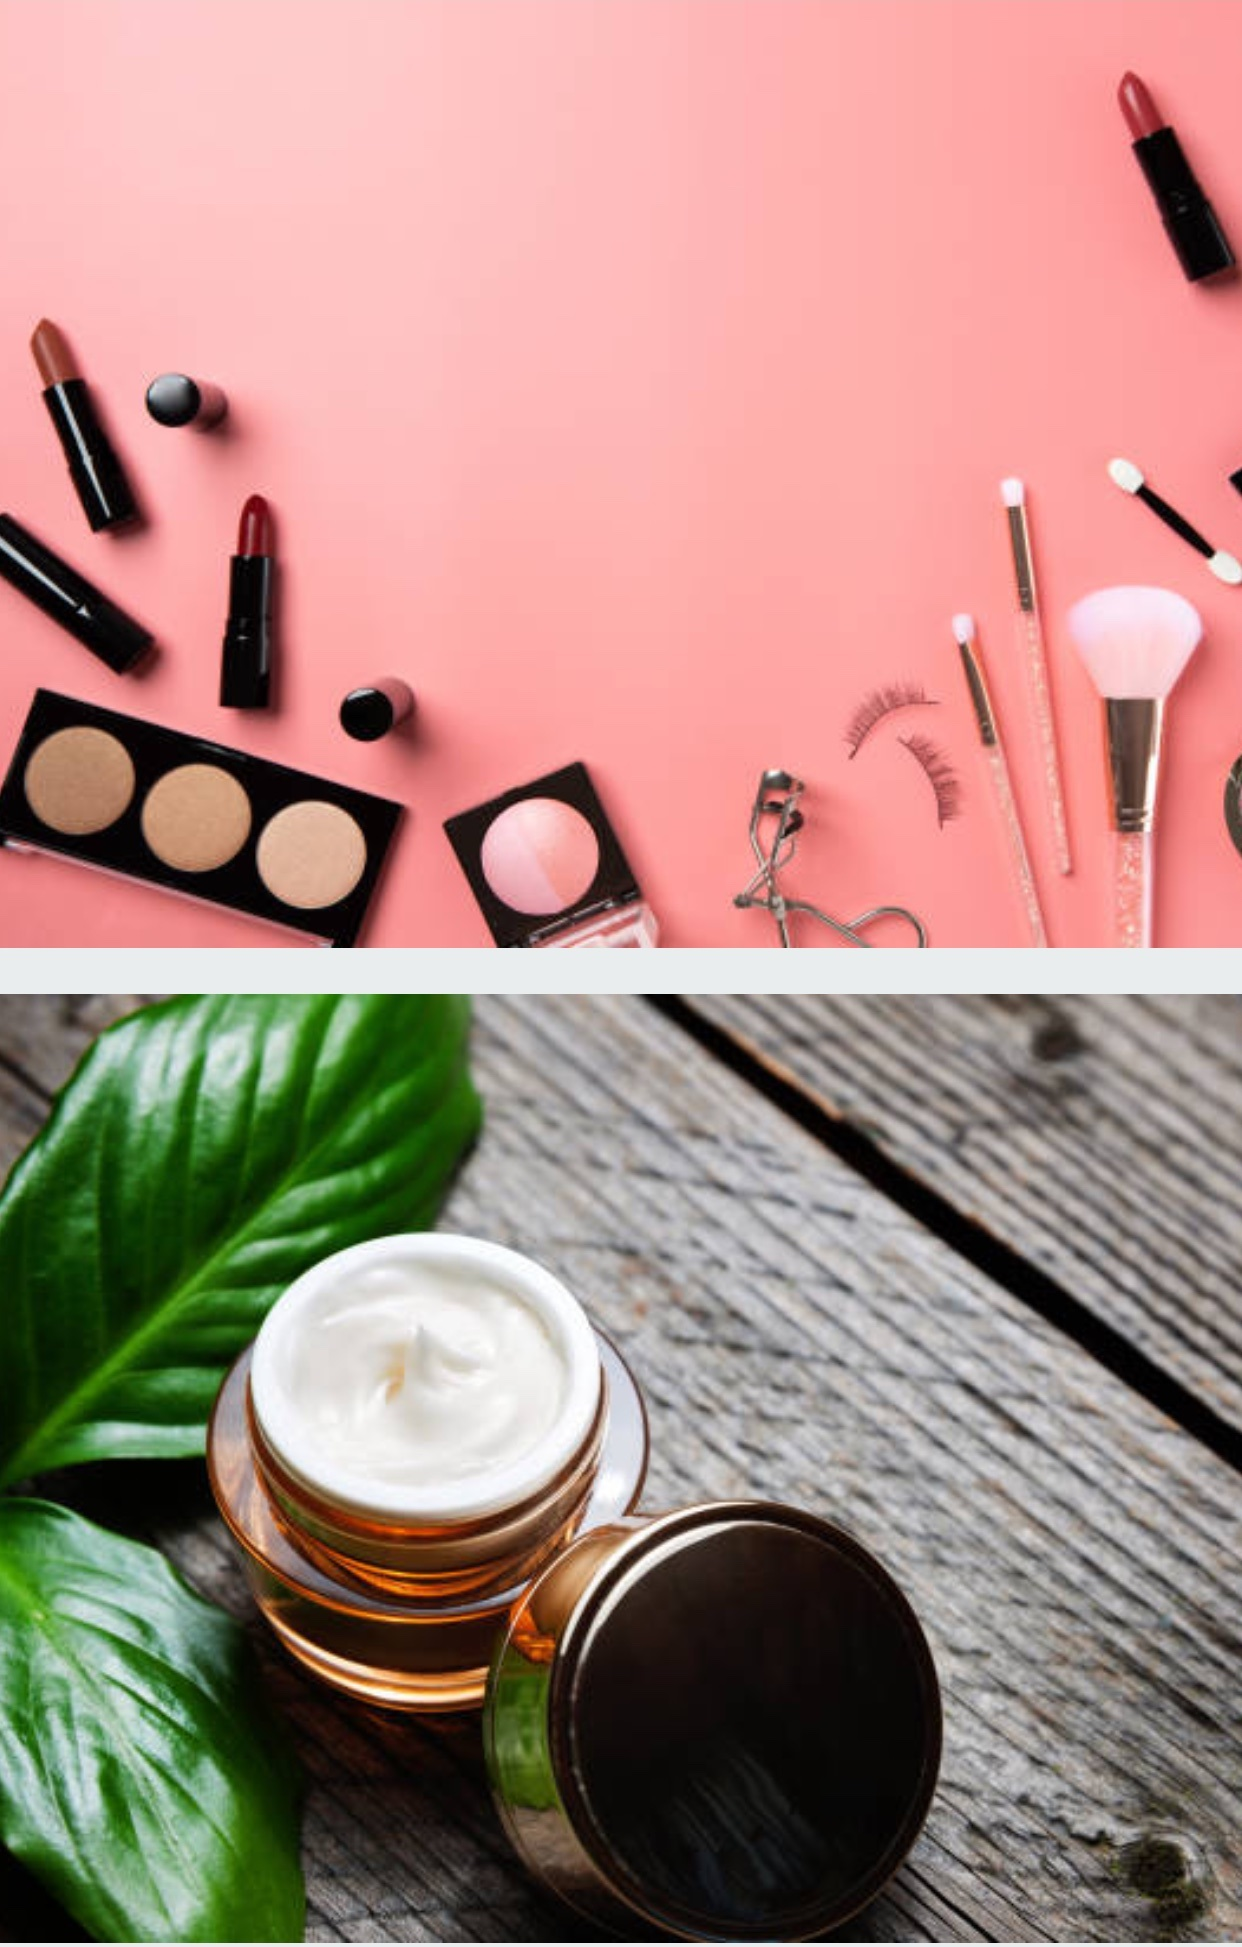 Pircosmetics Newsletter